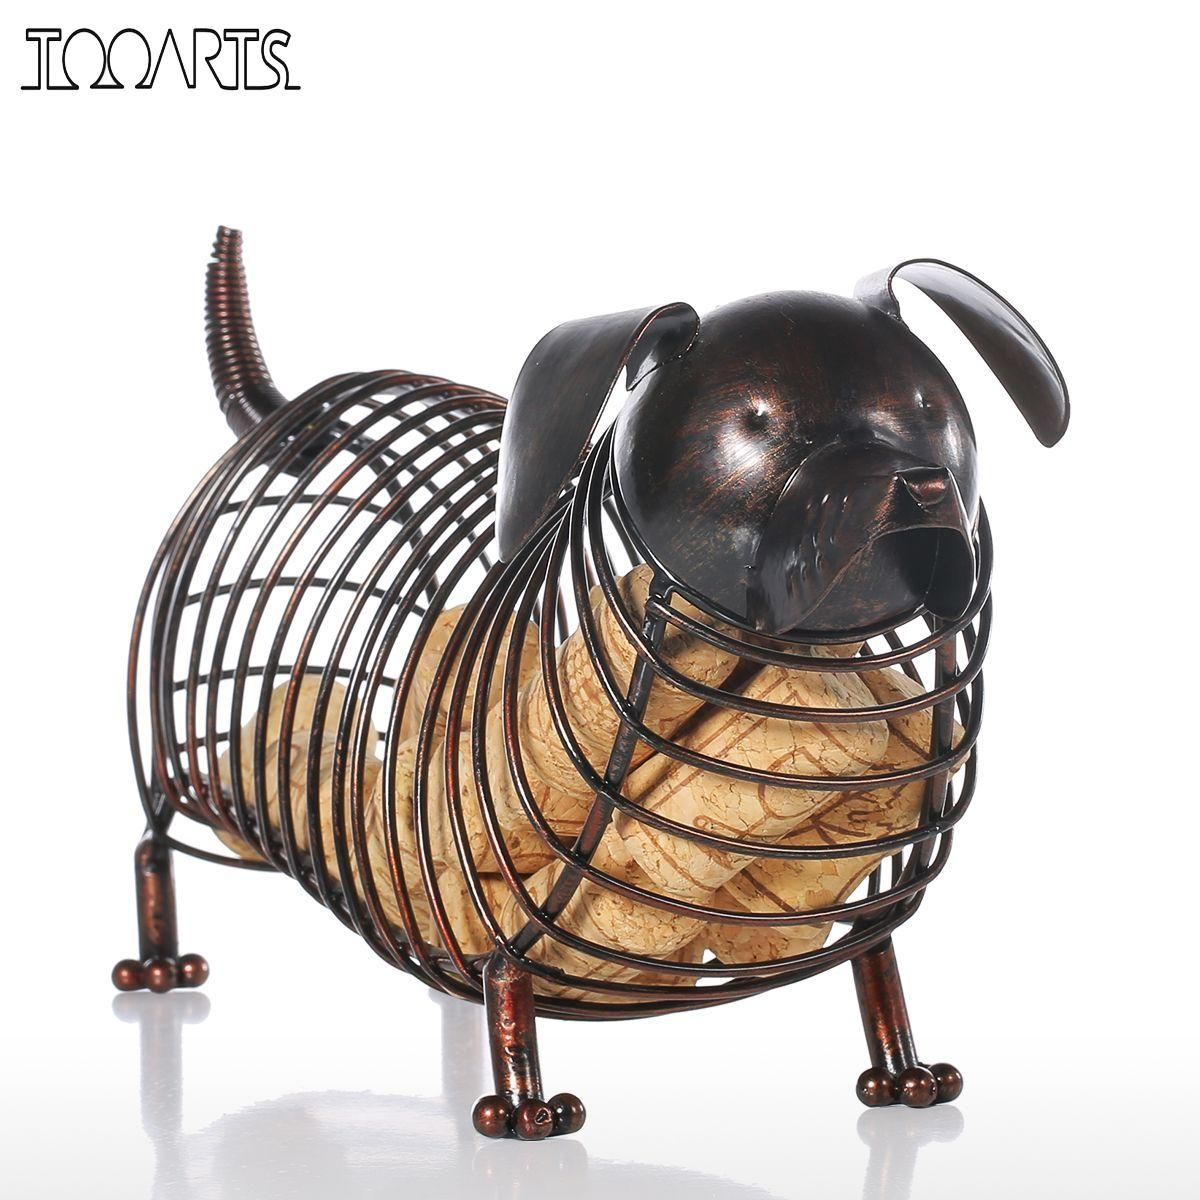 Tooarts Metal Animal Figurines Dachshund Wine Cork Container <font><b>Modern</b></font> Artificial Iron Craft Home Decoration Accessories Gift